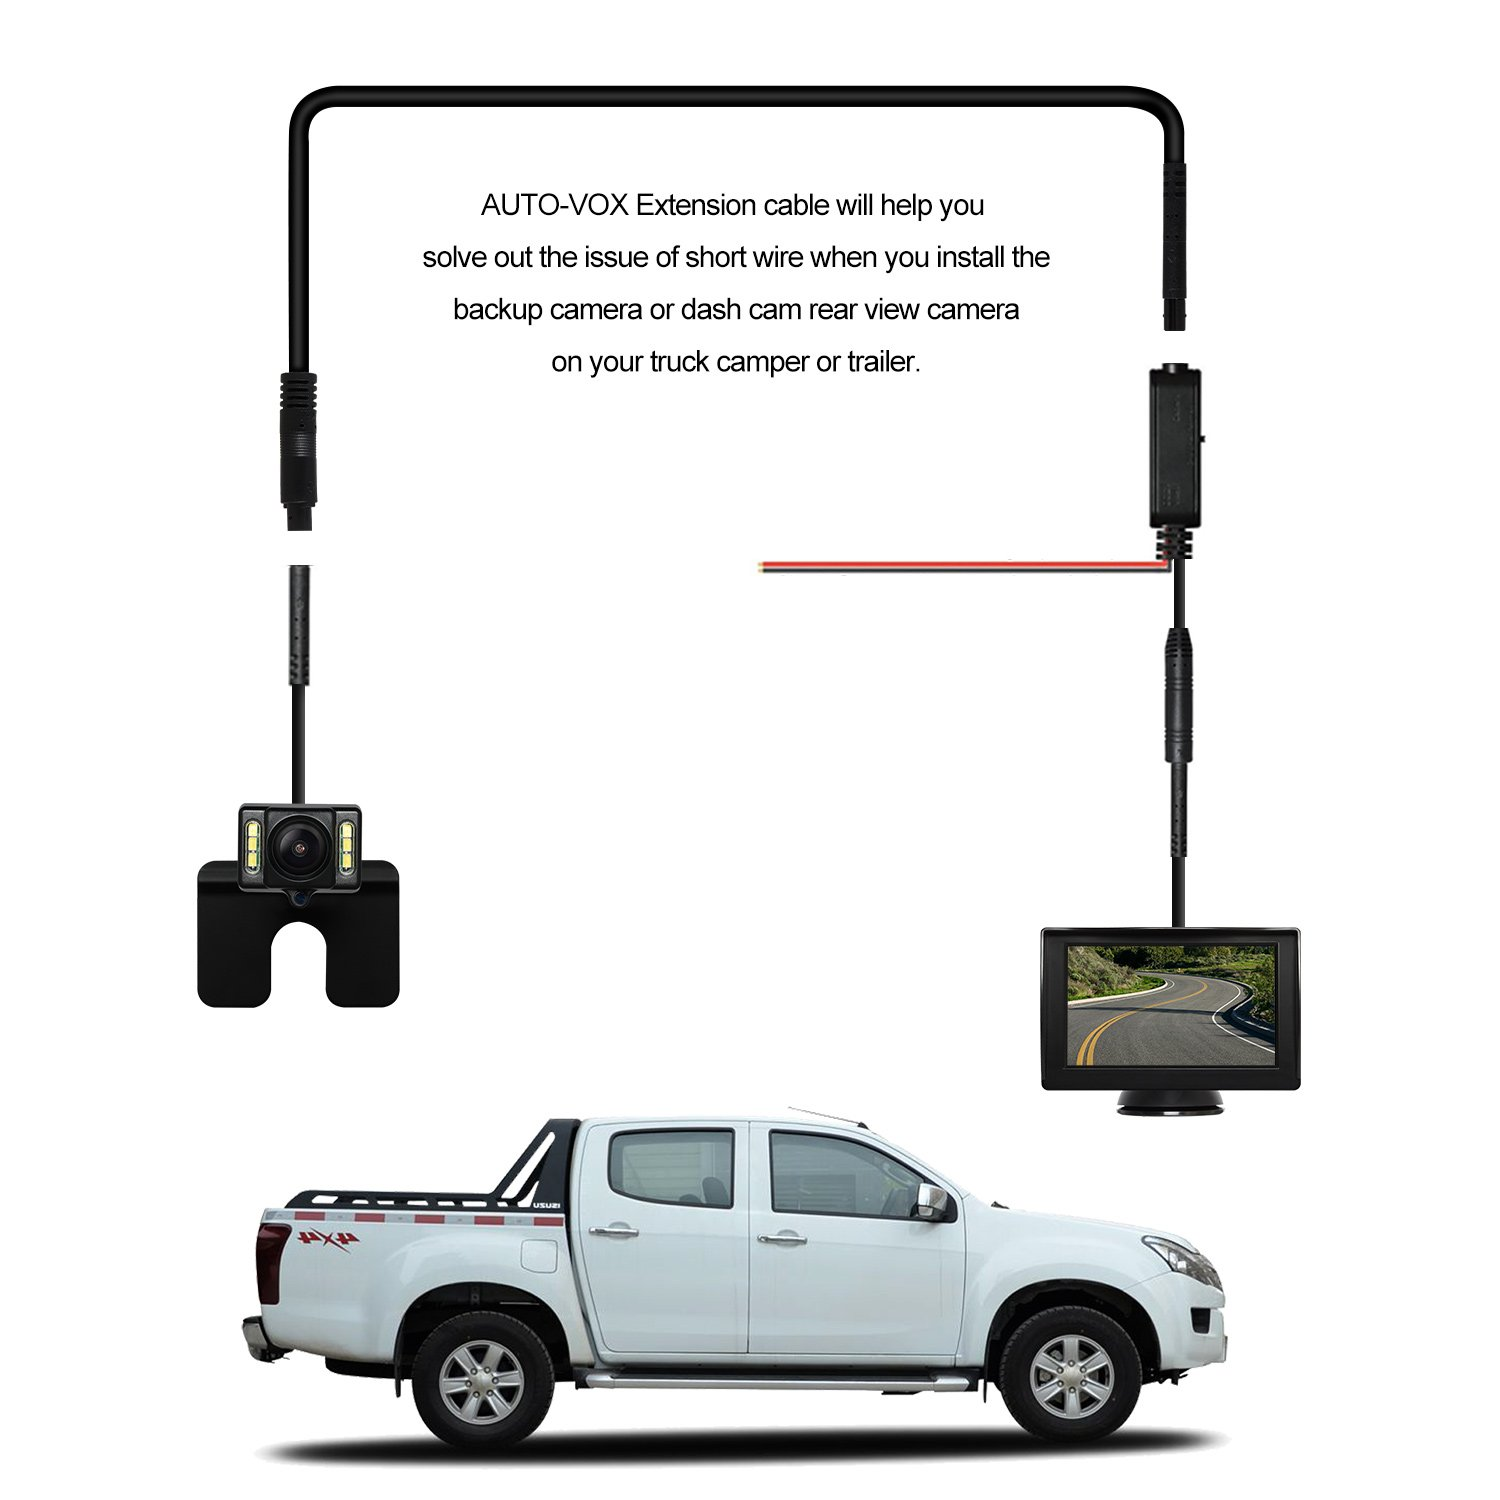 AUTO VOX 9 8ft Extension Cord Dash Cam Rear View Backup Camera Cable for  Truck Camper Trailer Bus Van (4 pin)